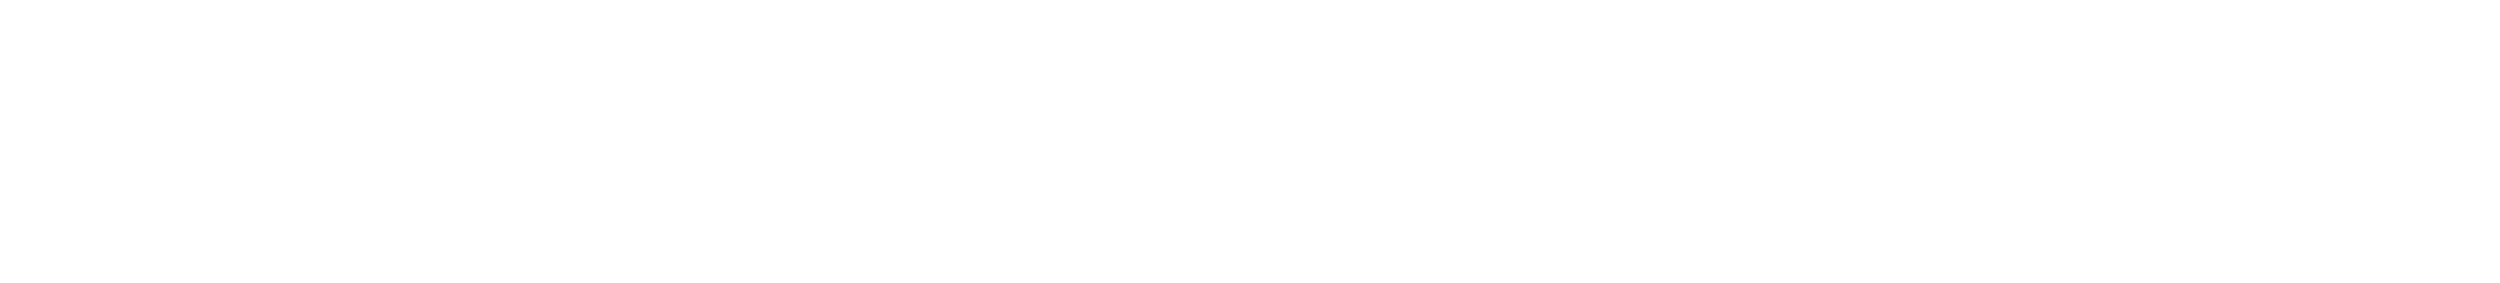 NaomiNomi_WordMark_White.png